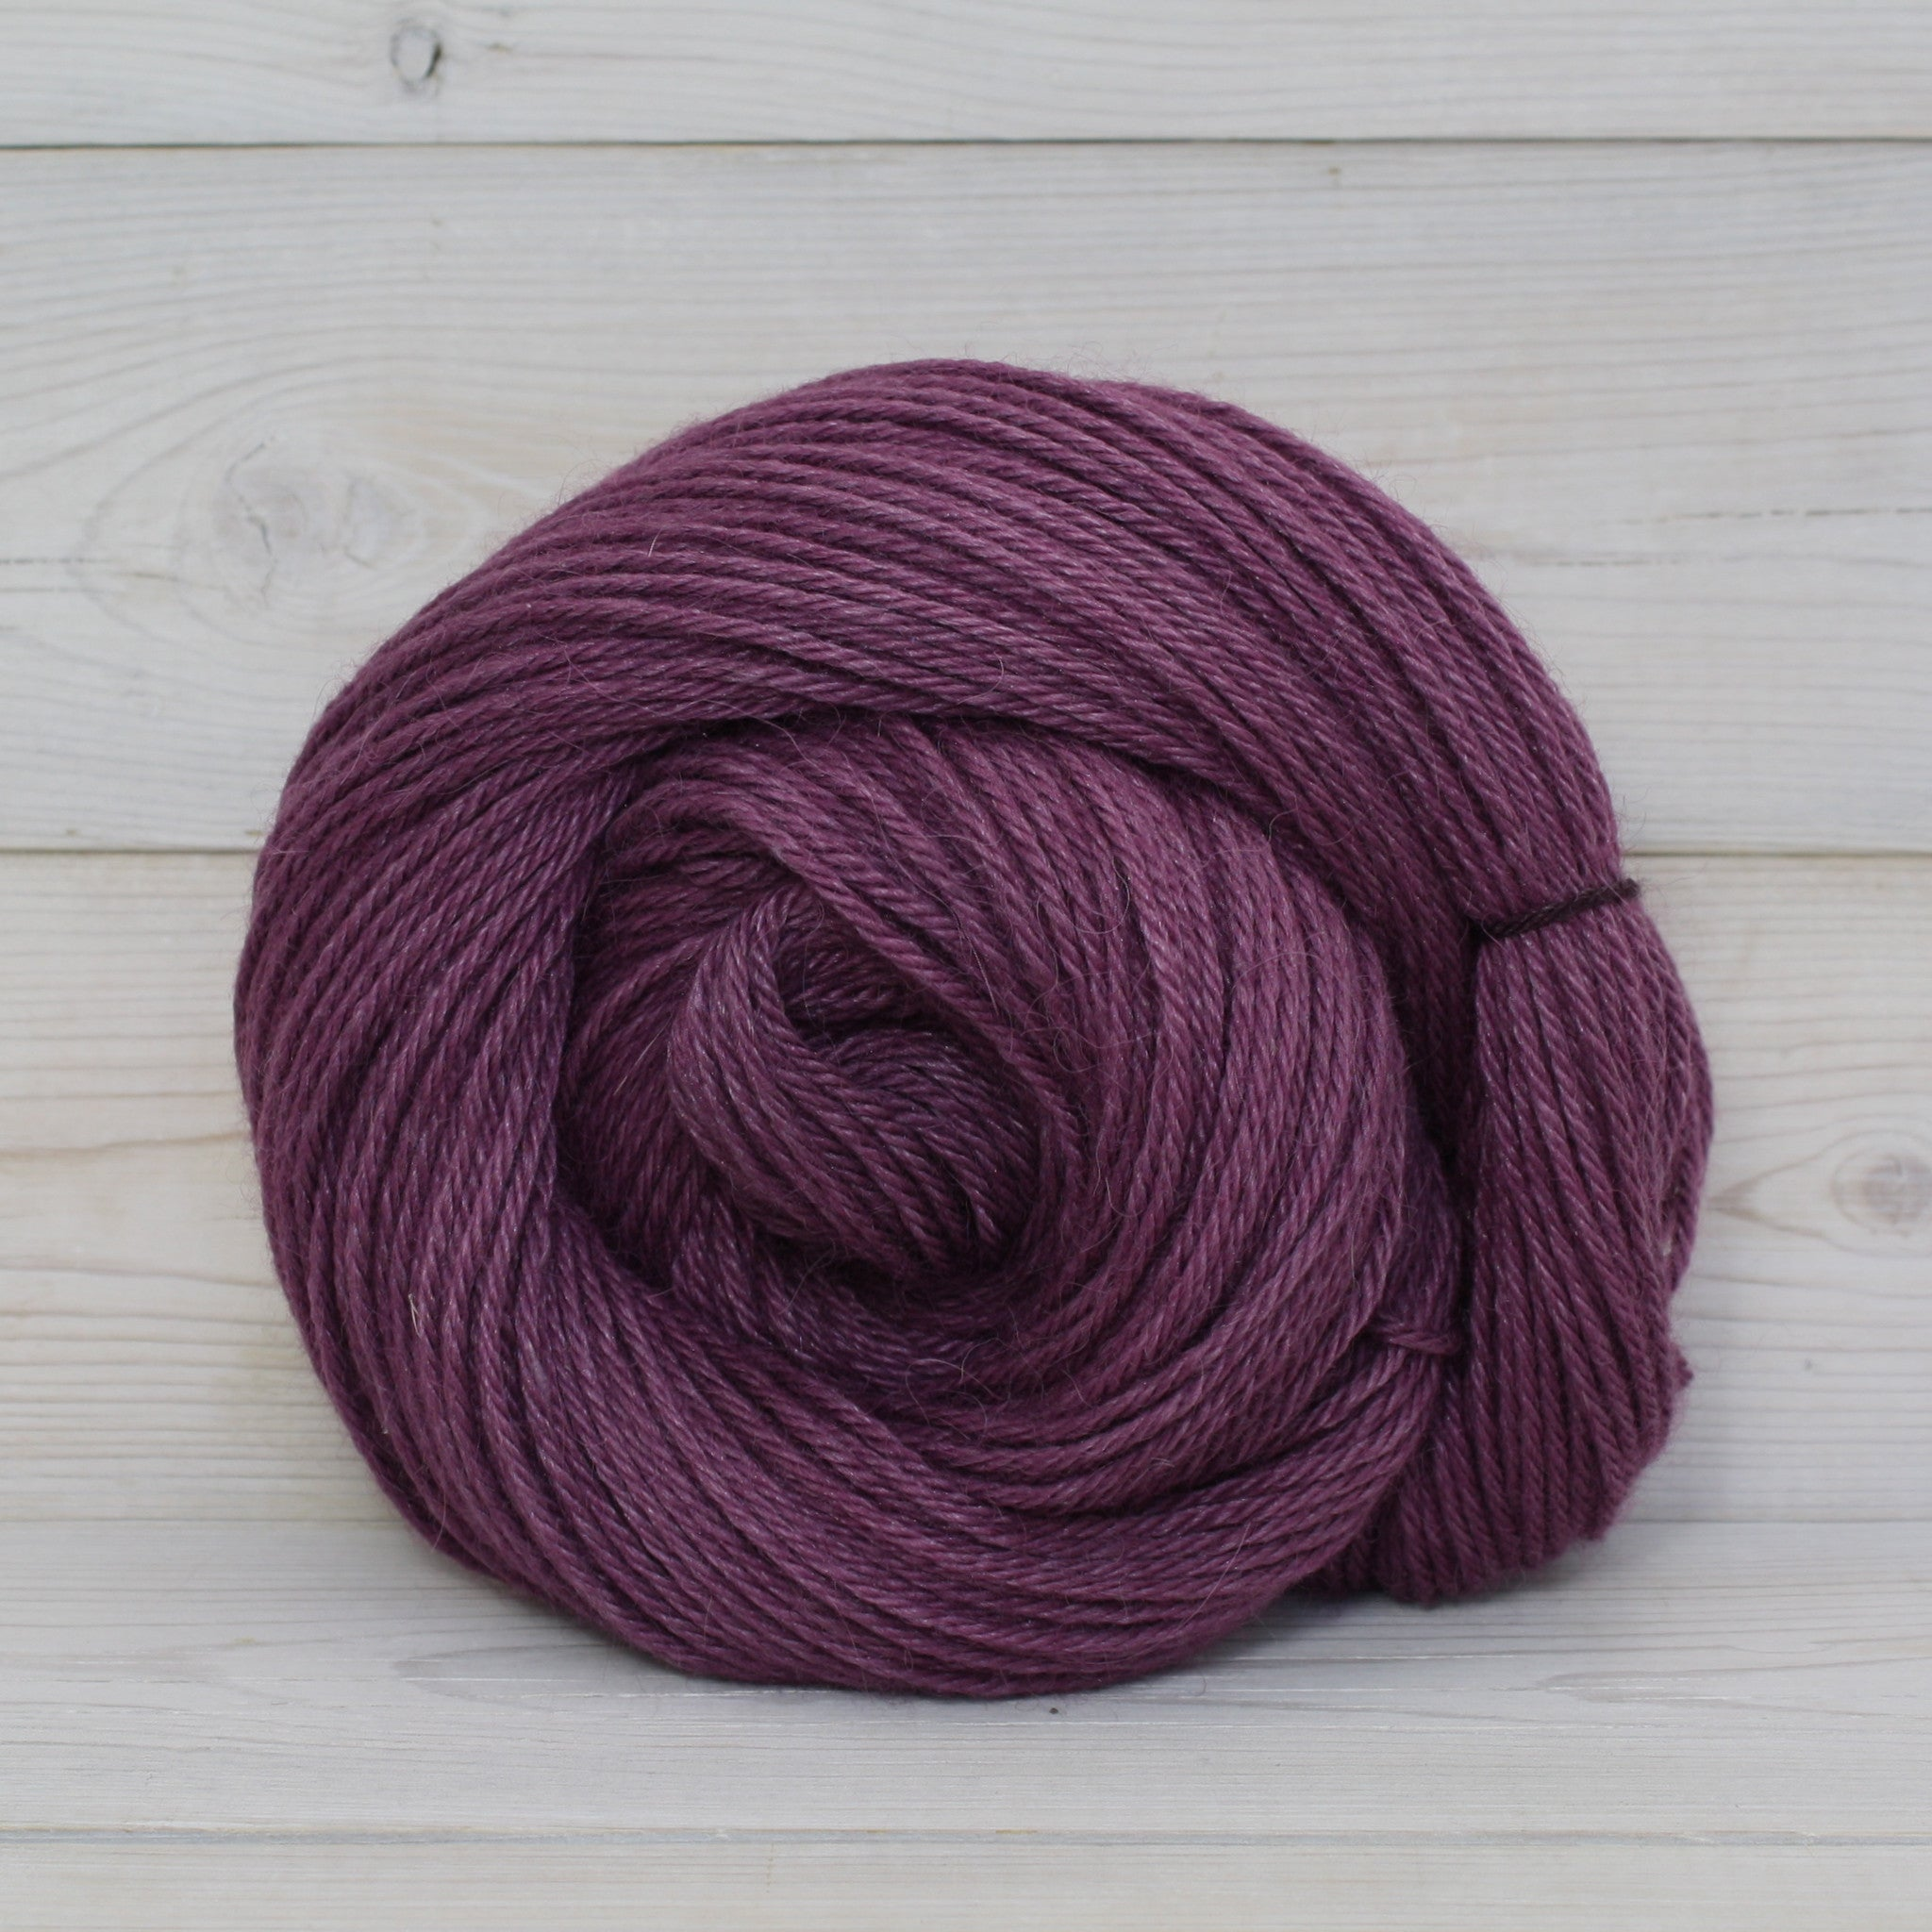 Luna Grey Fiber Arts Vega Yarn | Colorway: Eggplant